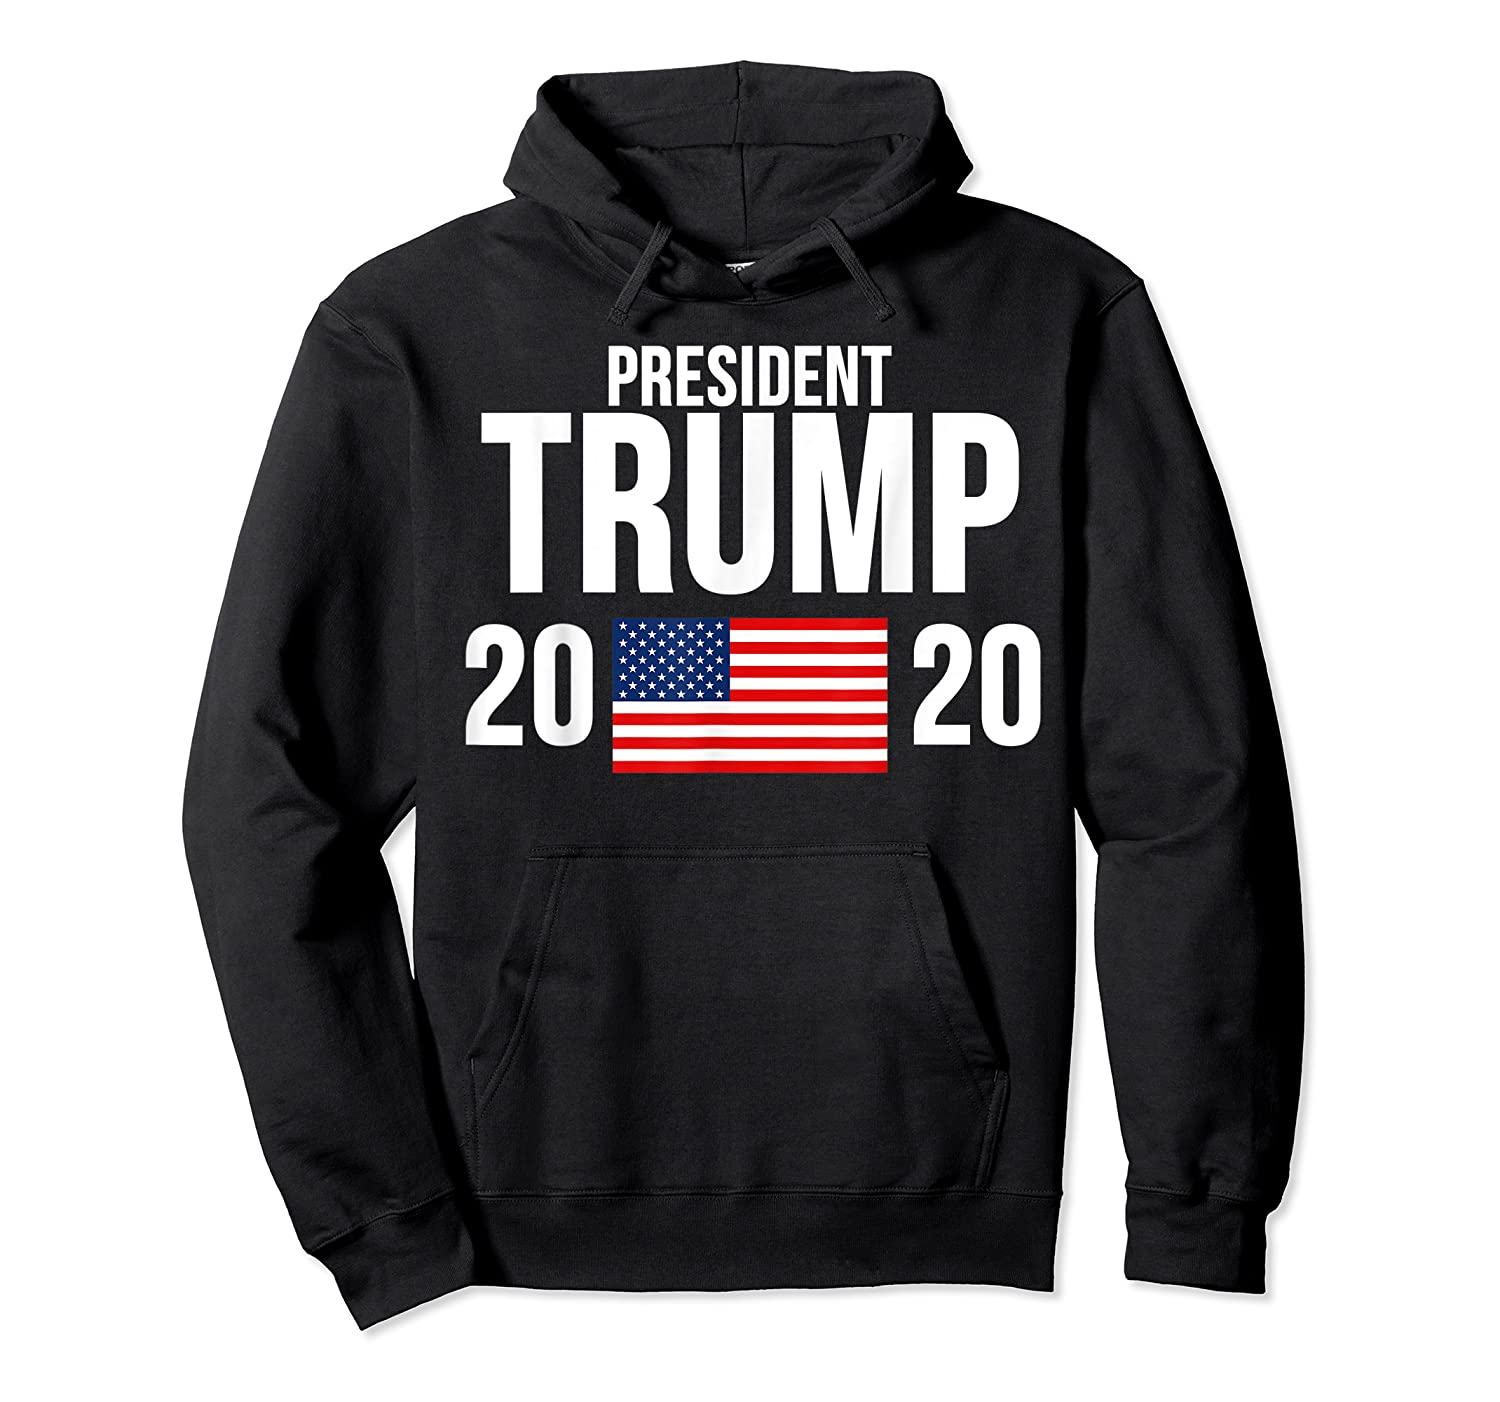 President Trump 2020 Presidential Campaign Re Election T Shirt Unisex Pullover Hoodie